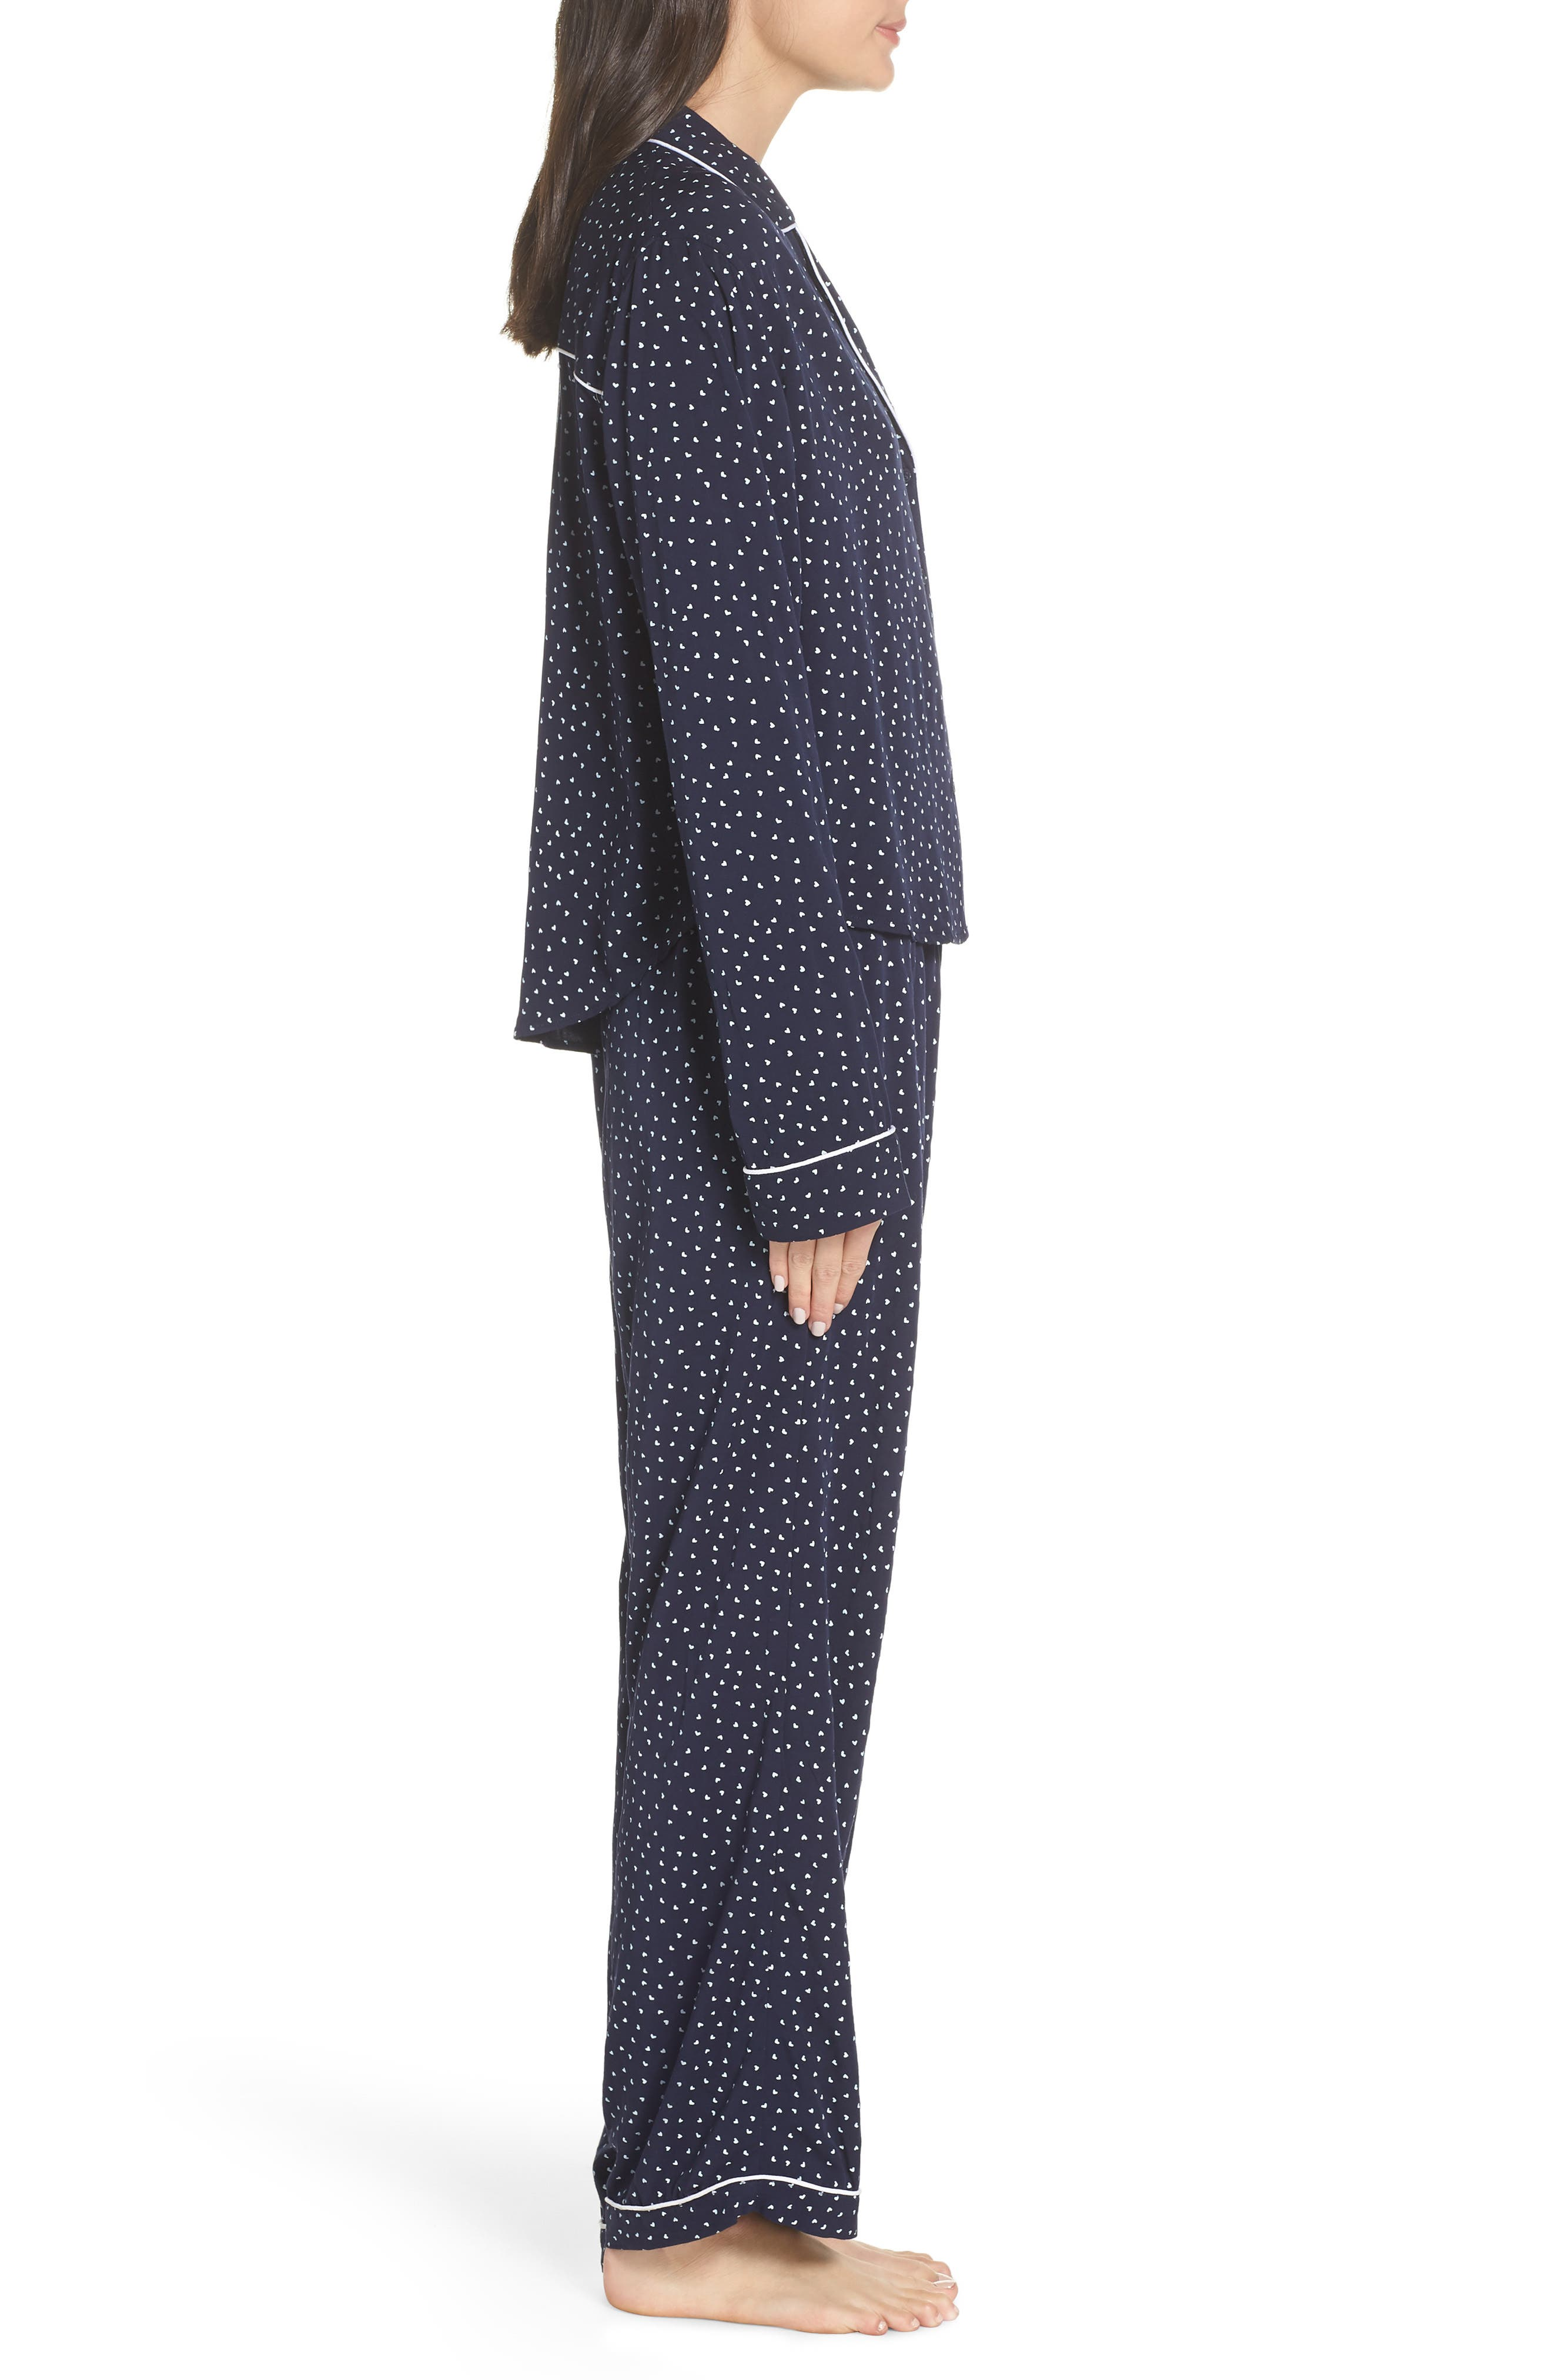 Heart Print Pajamas,                             Alternate thumbnail 3, color,                             NAVY MINI HEARTS